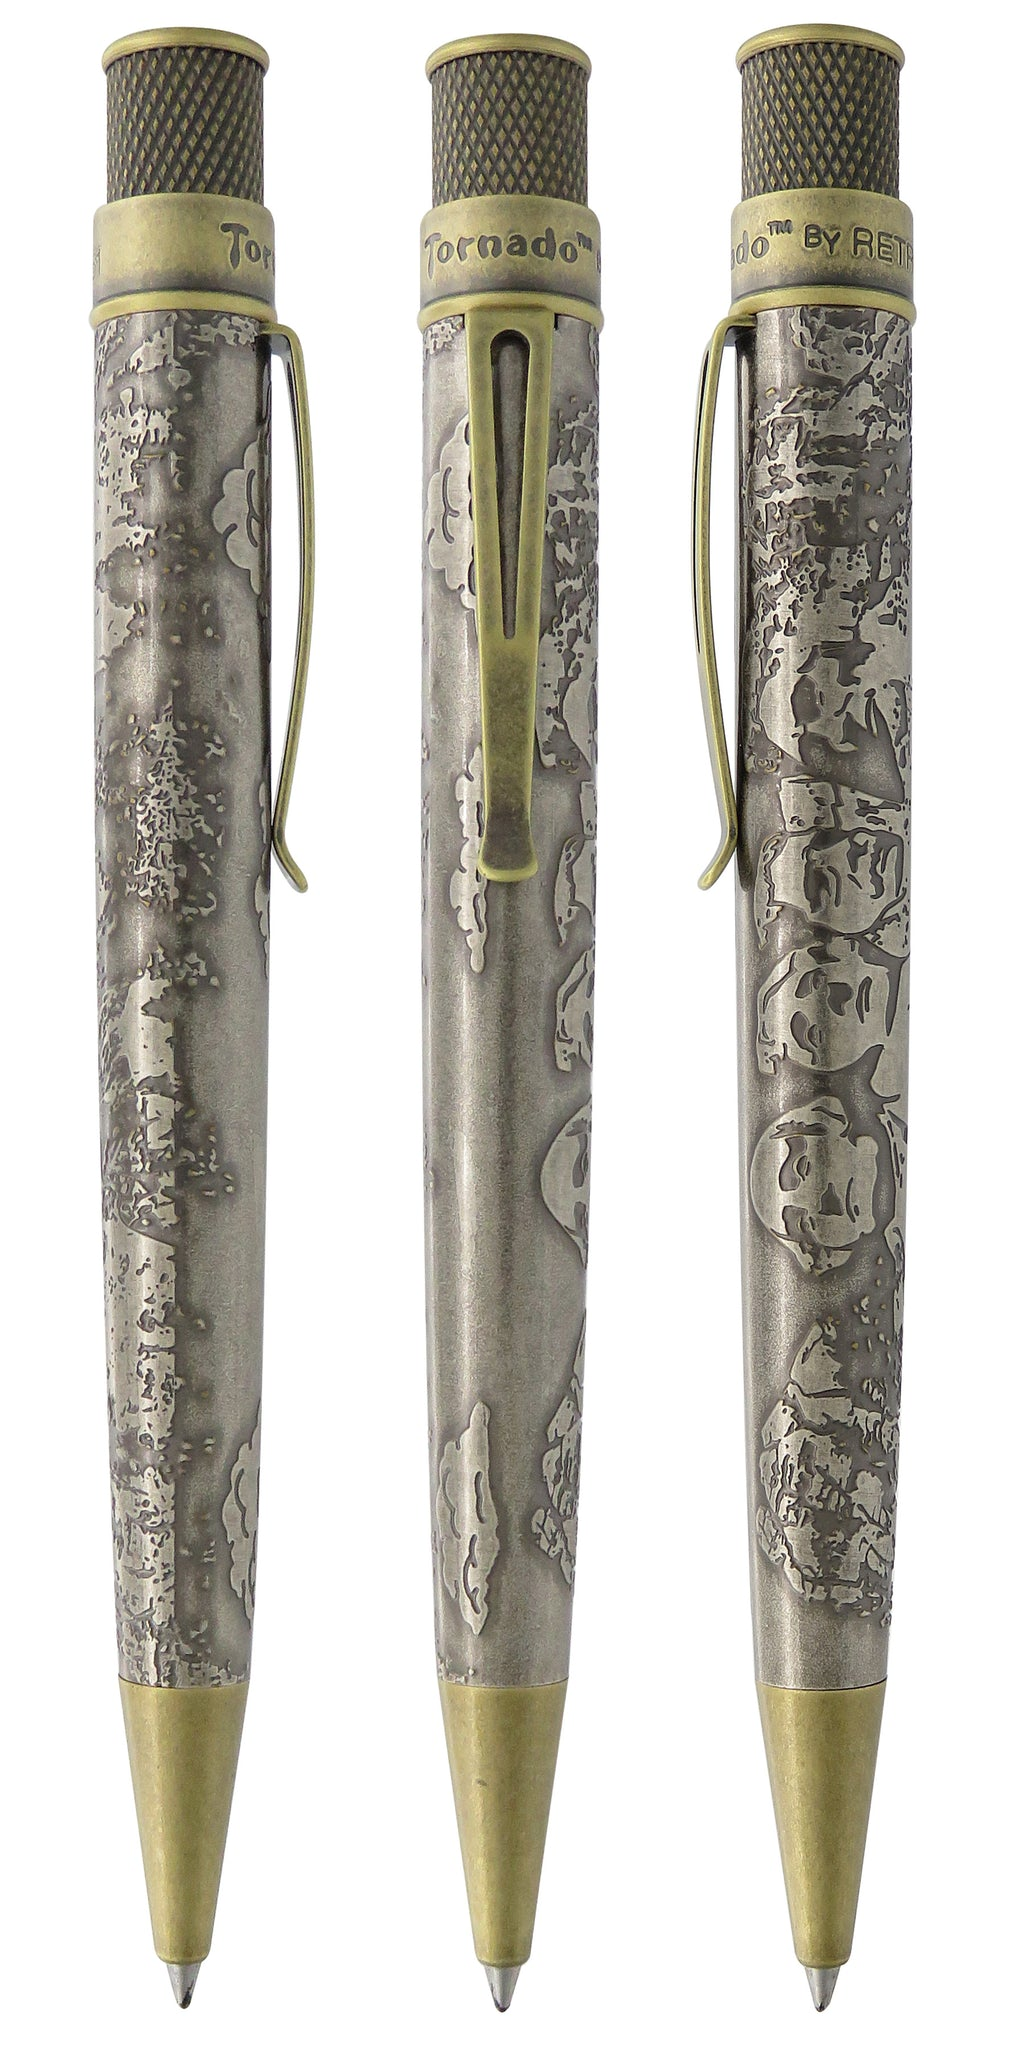 Keystone Mount Rushmore Rollerball, limited edition of 951 (Limit 1 of this pen per day please)